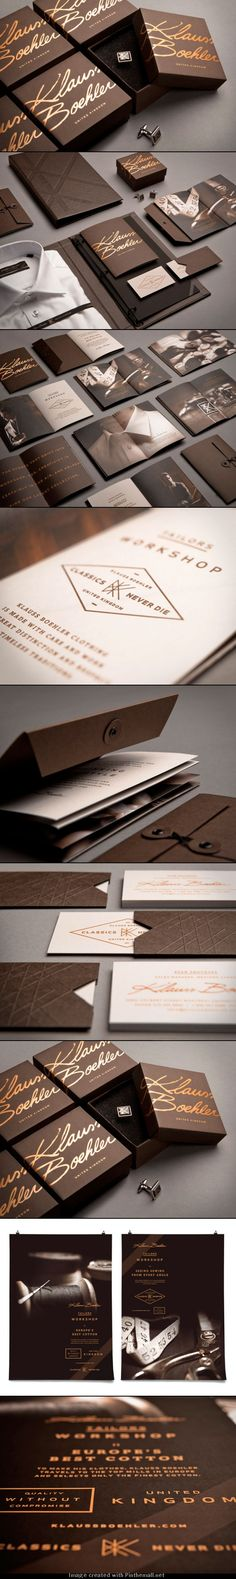 Here's some more lovely copper detailing for you @jluisfer Klauss Boehler beautiful identity, packaging, branding PD